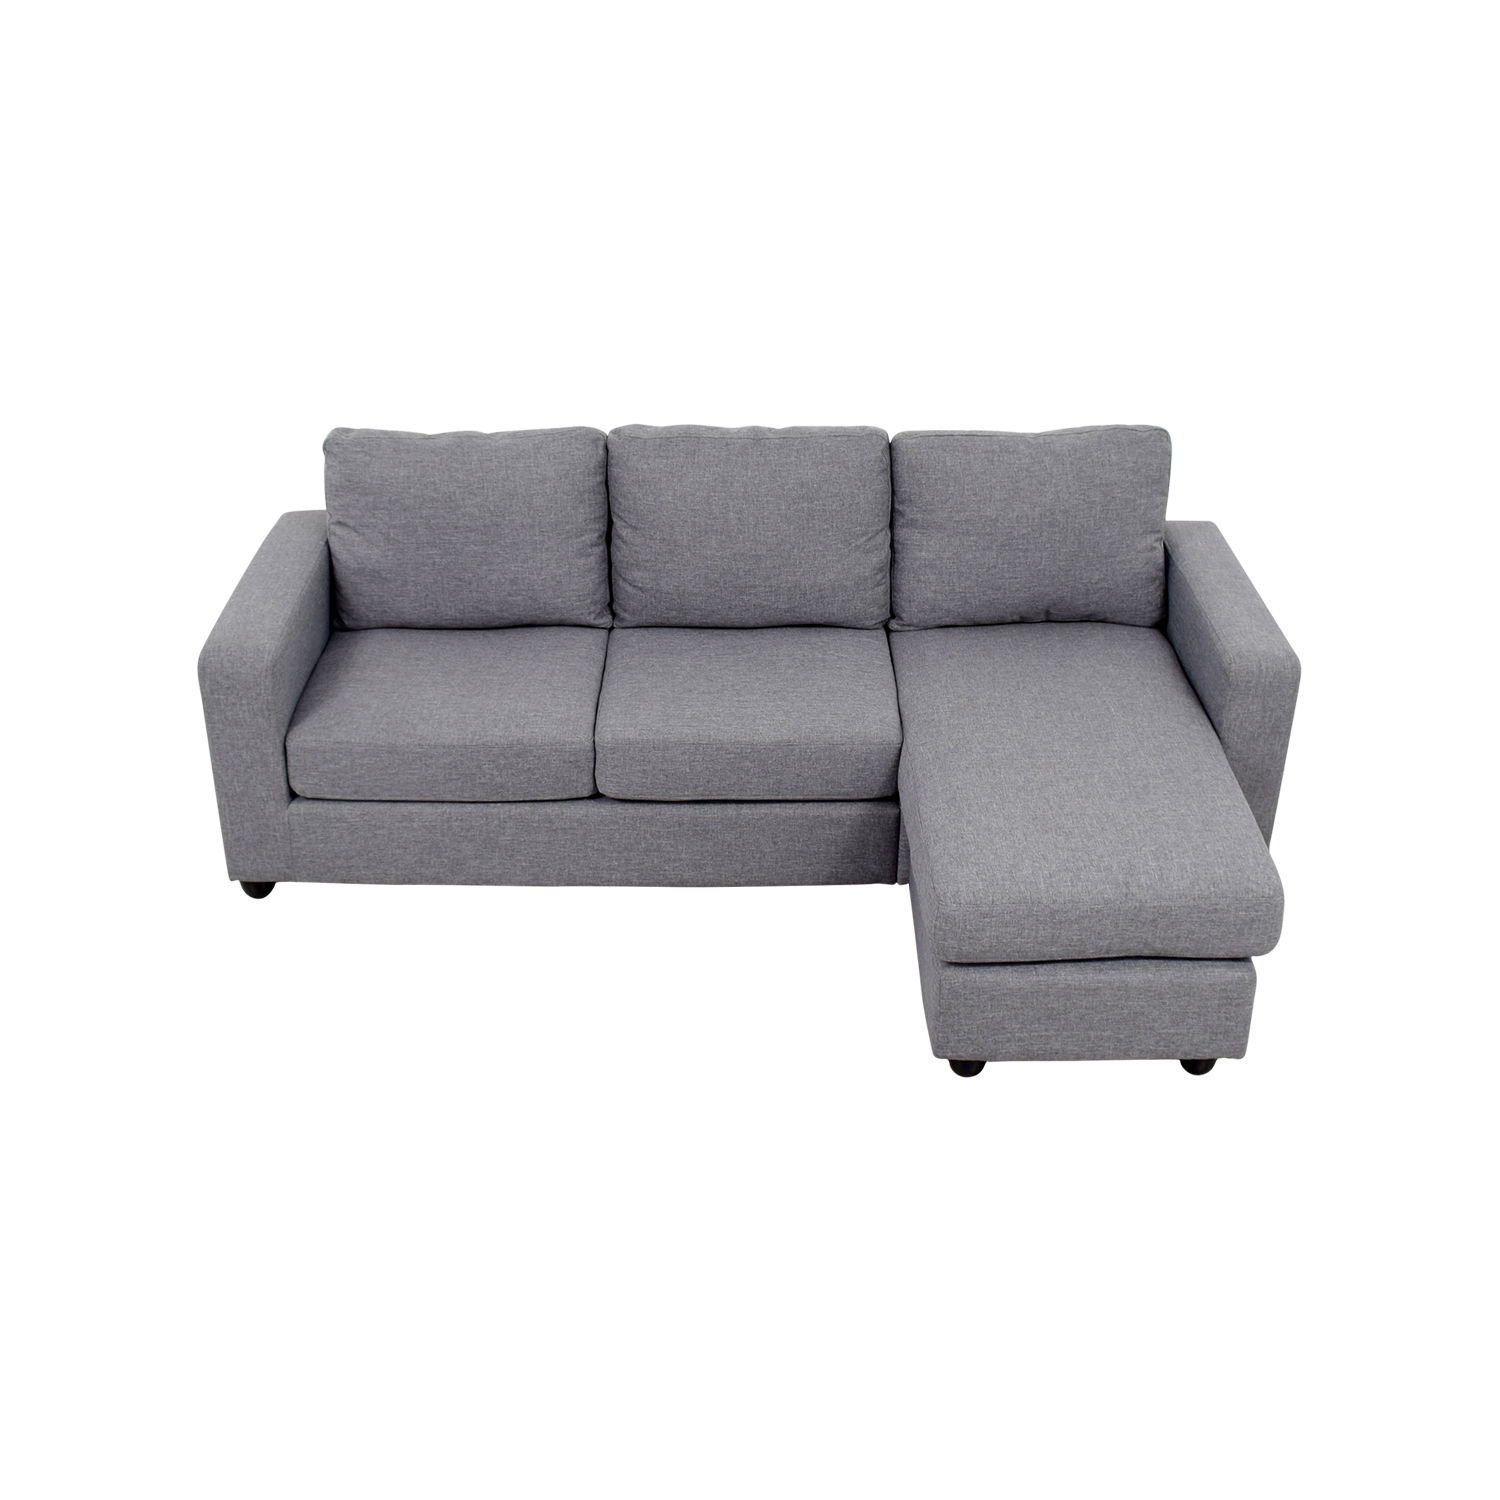 Grey L-Shaped Chaise Couch on sale